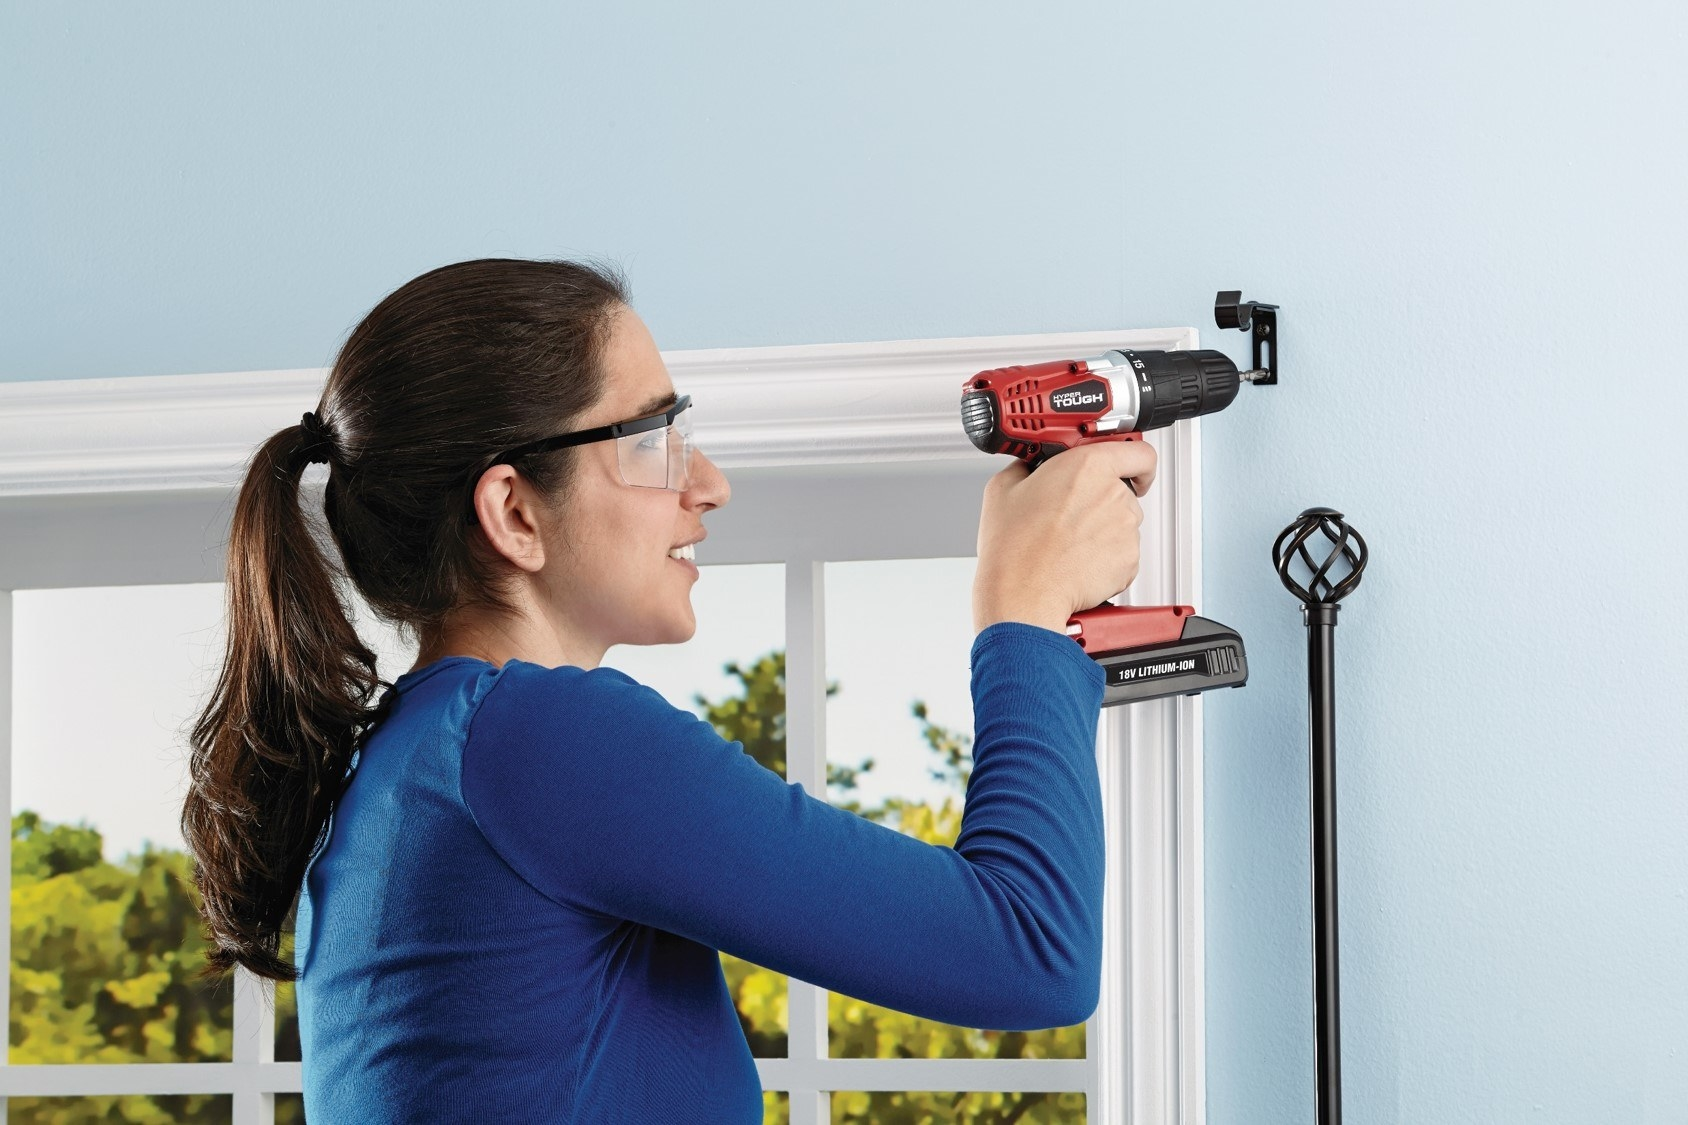 person using a red power drill to drill a curtain rod holder into the wall